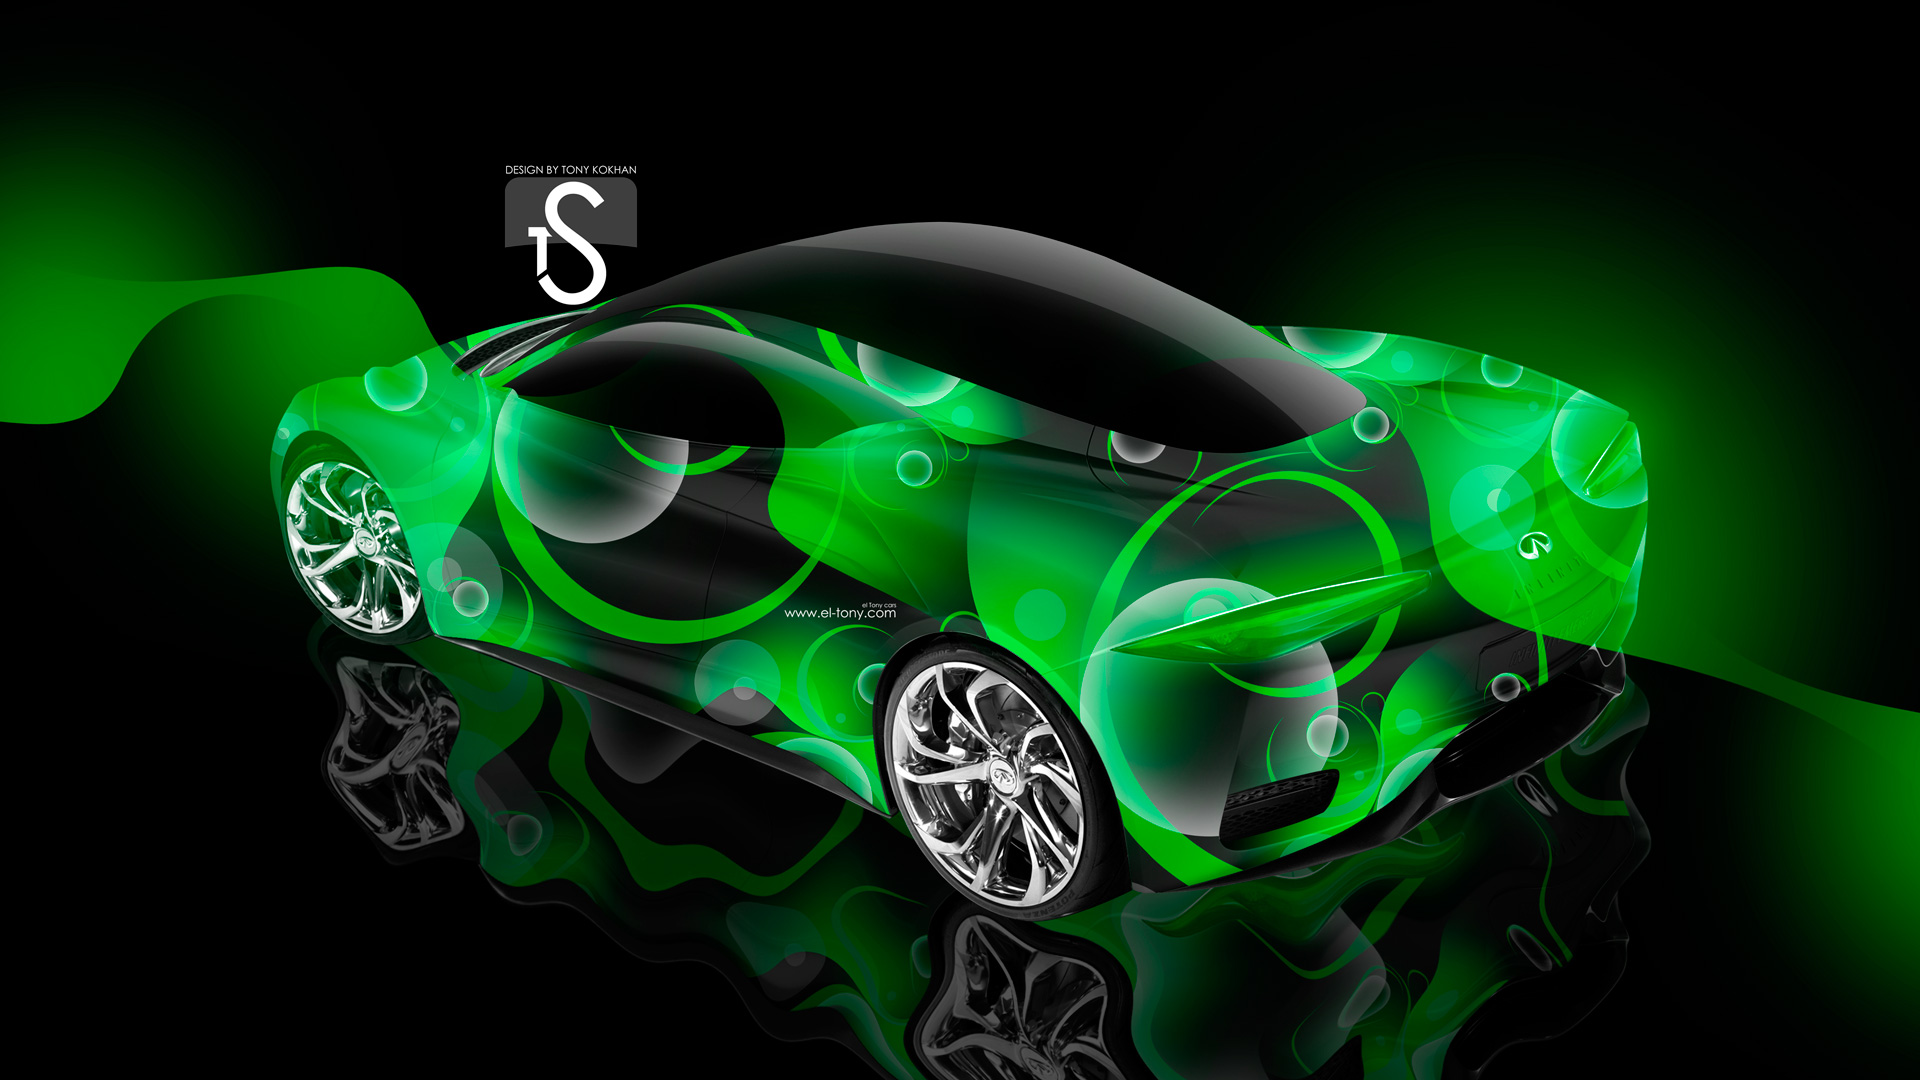 Marvelous Infiniti Emerg E Abstract Green Neon Car 2013 .